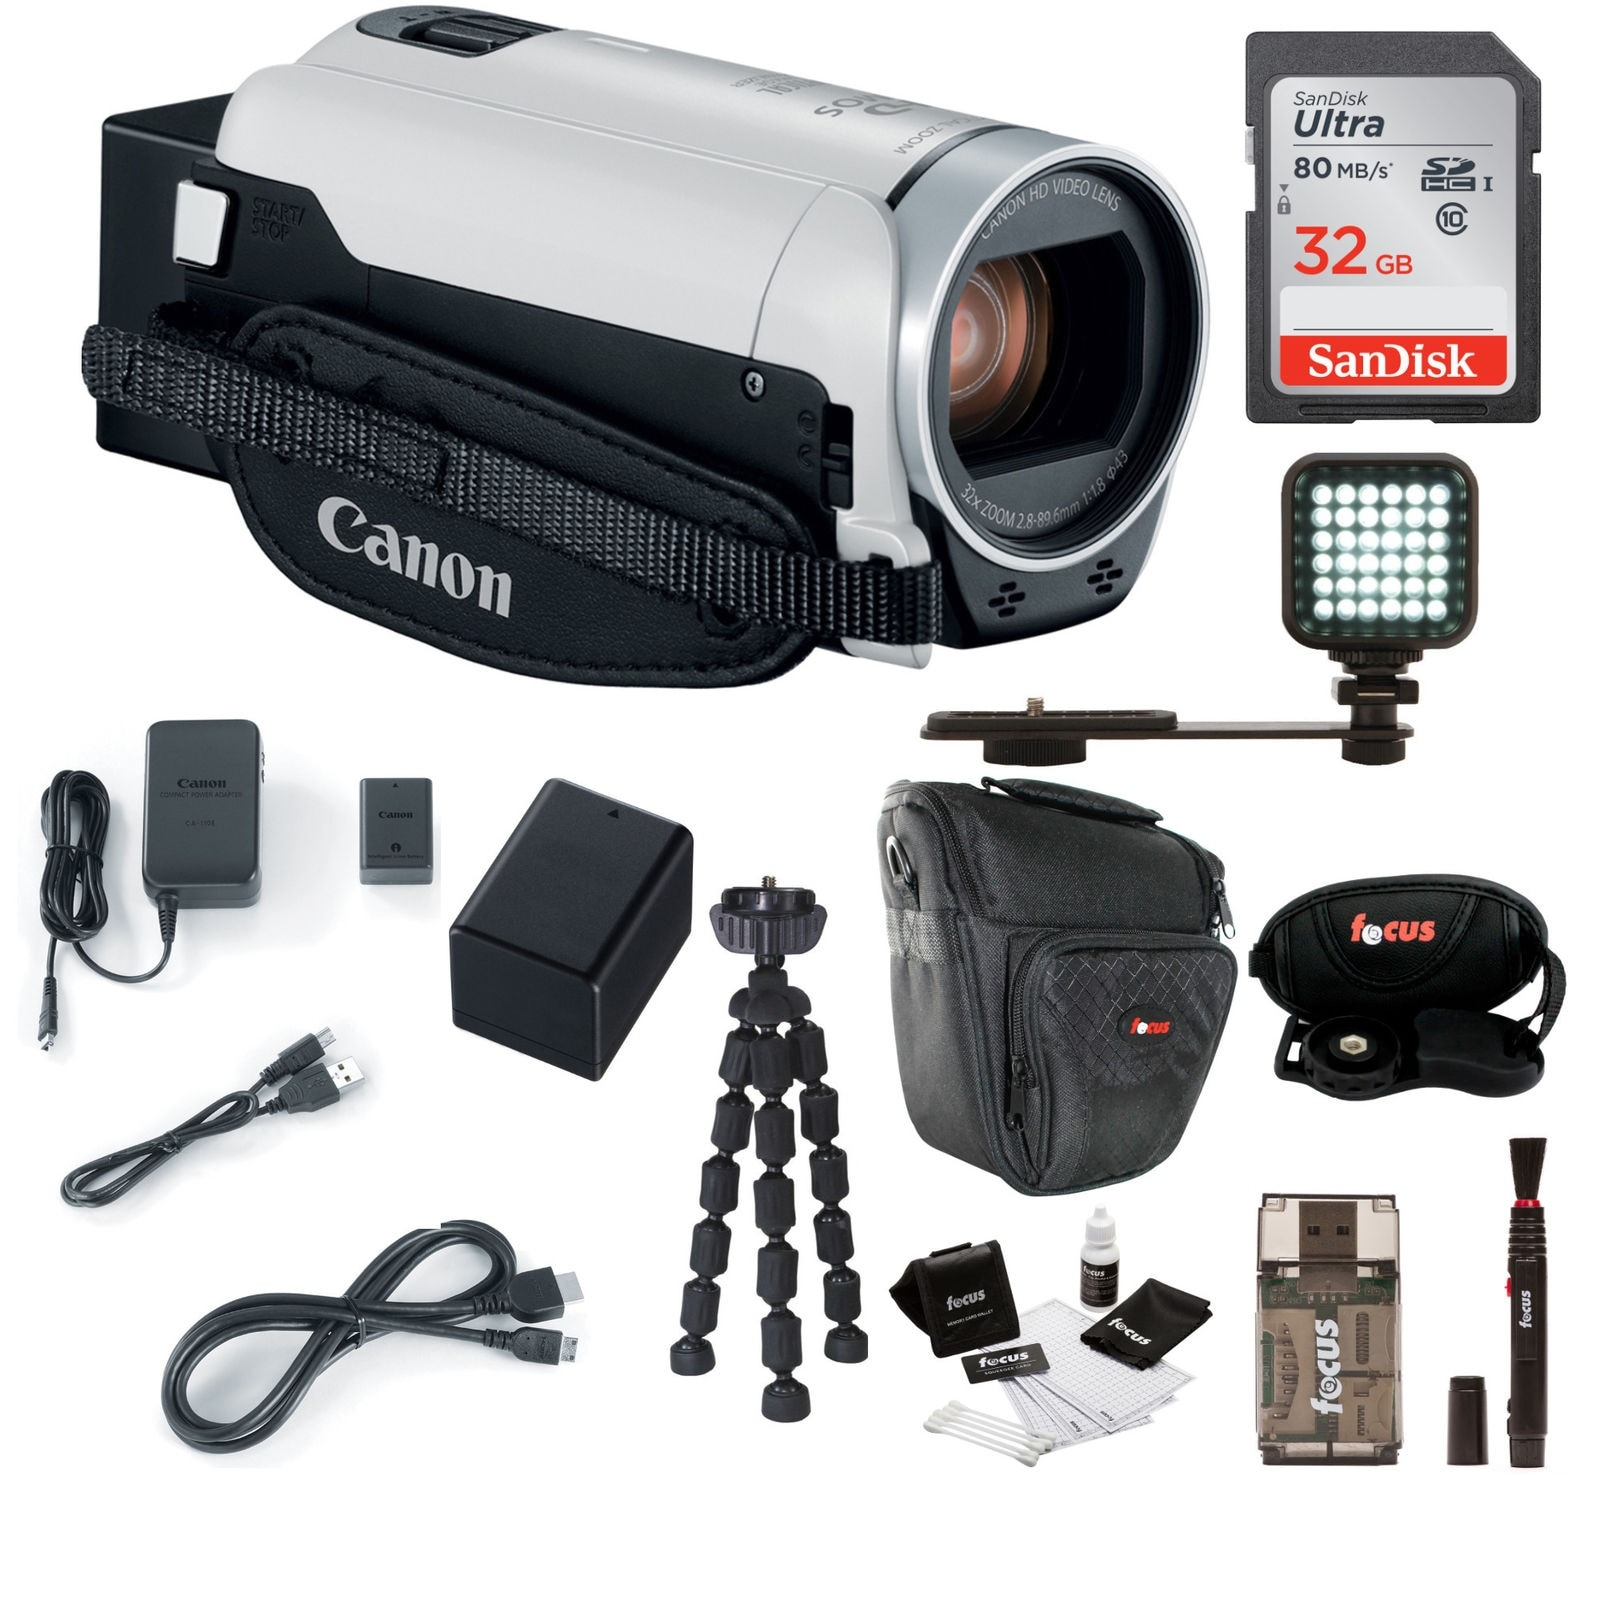 6401e4b74be Shop Canon VIXIA HF R800 Camcorder (White) with 32GB Supreme Bundle - Free  Shipping Today - Overstock - 20598021